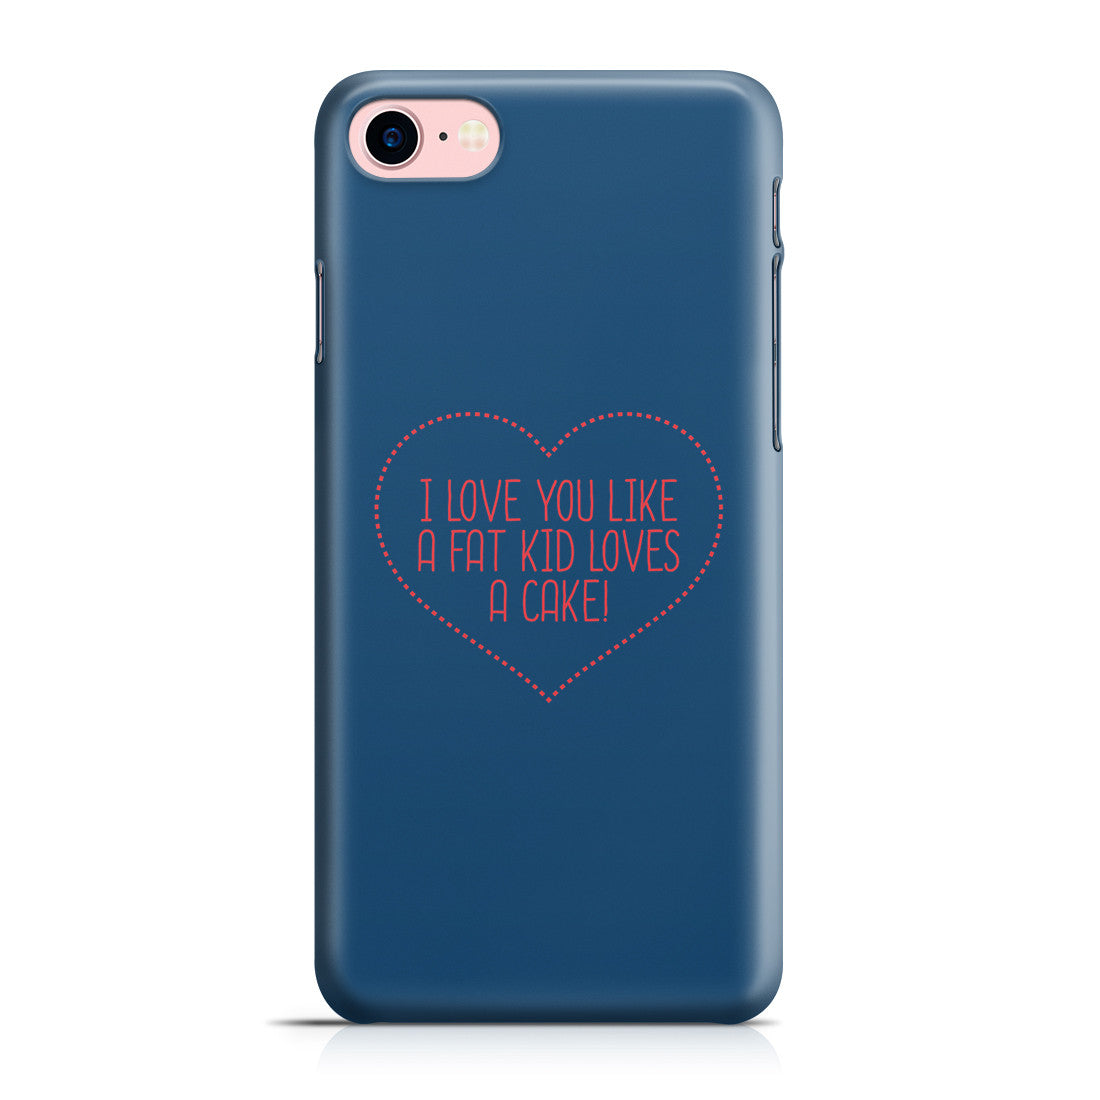 iphone 6s case i love you